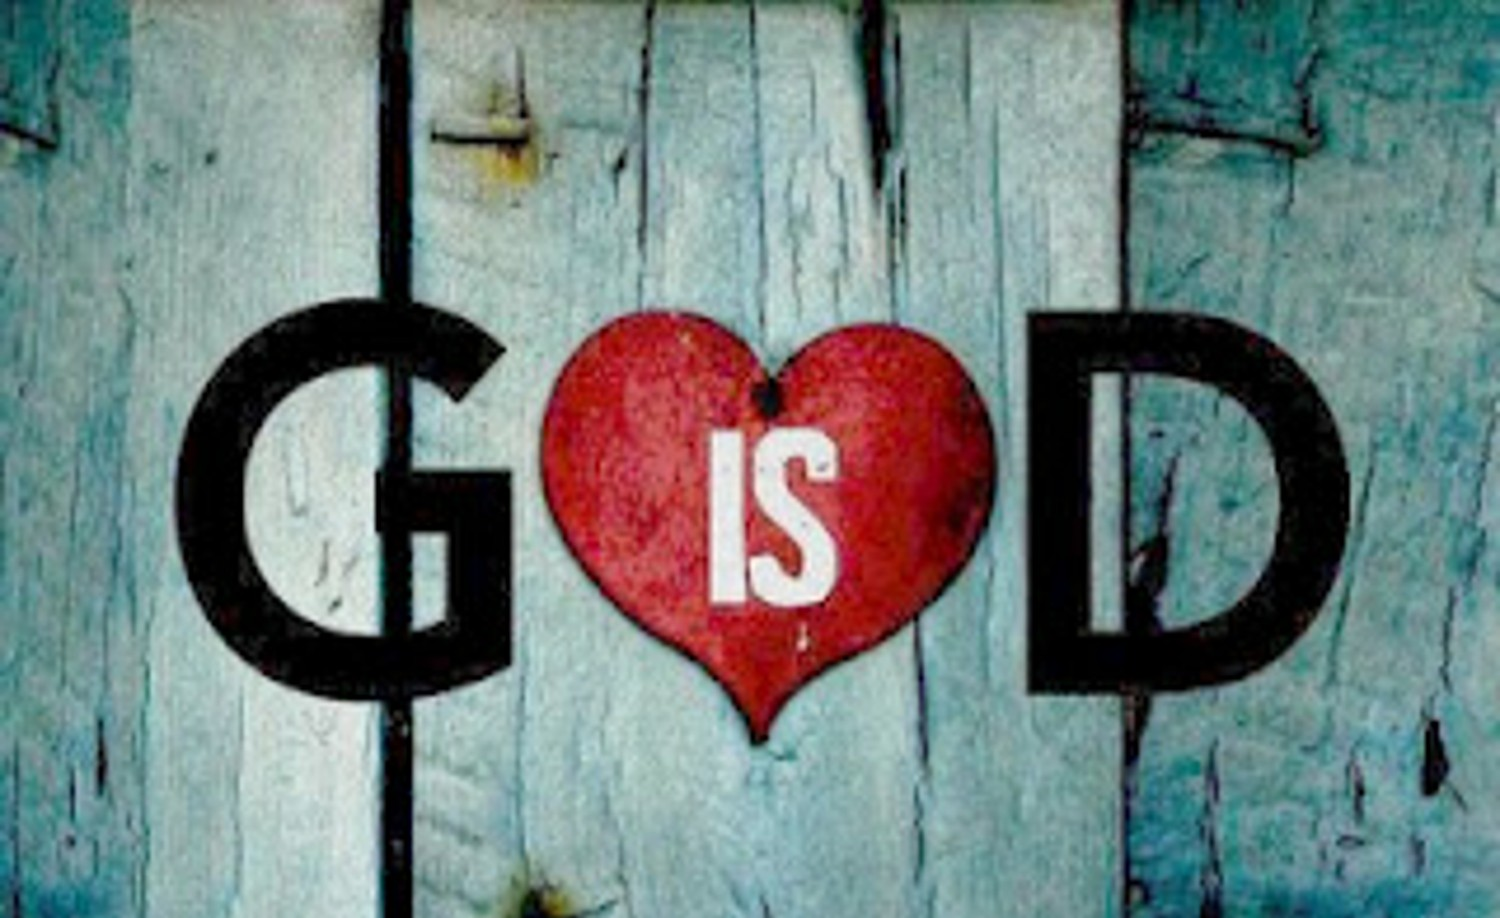 god is love Because god is love, i know he loves me no matter what, and he helps me to love others as i love myself.